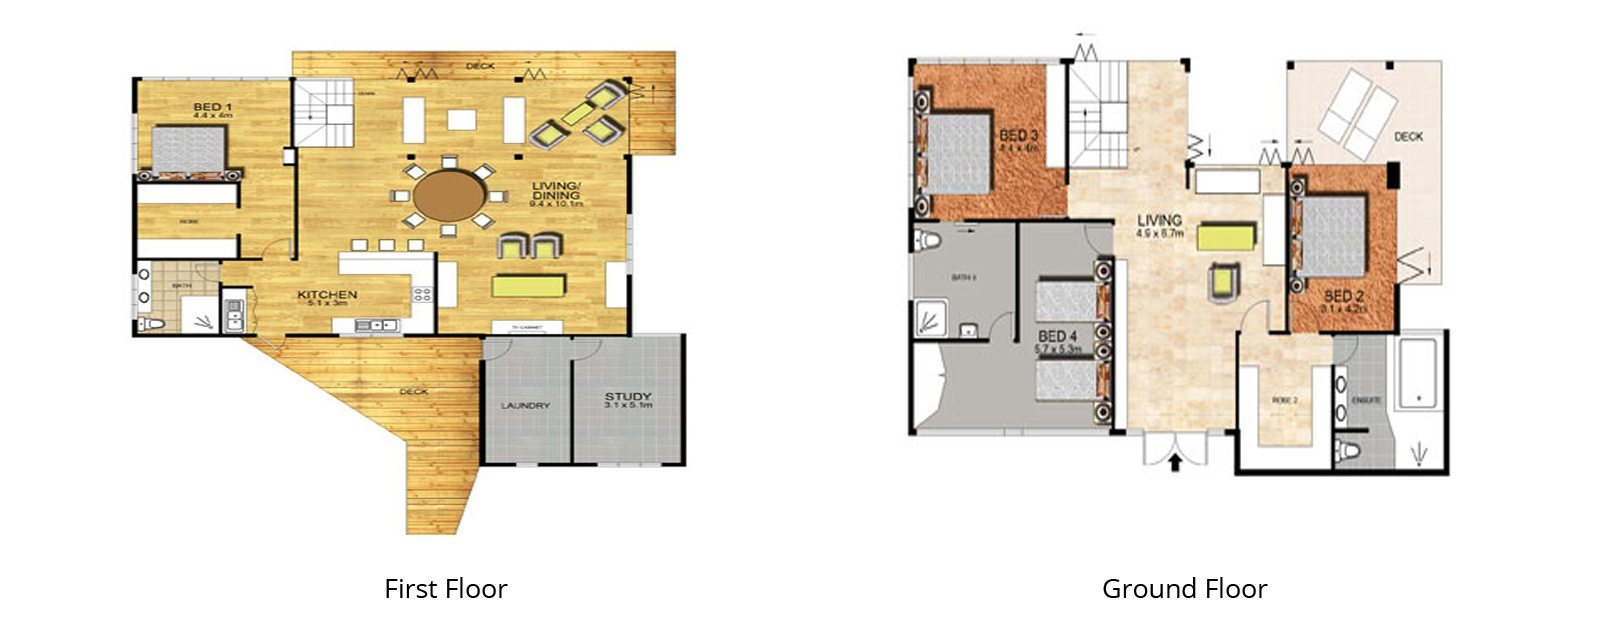 Villa15WS Floorplan | Port Douglas, Queensland